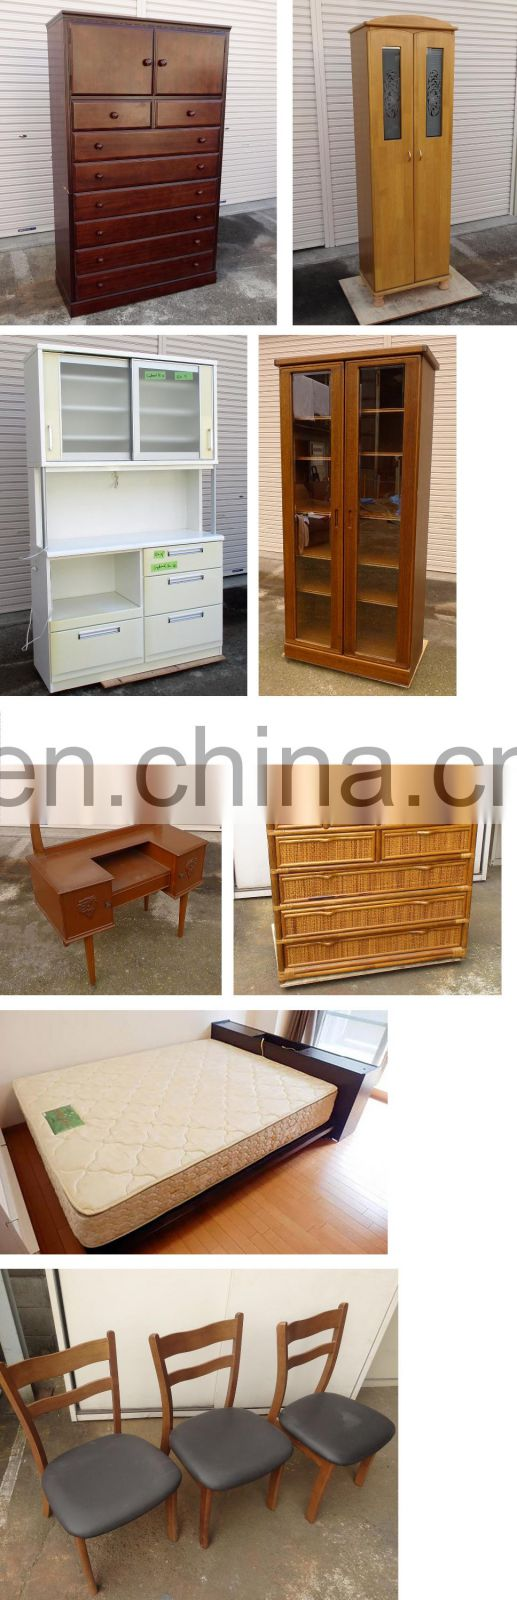 Long-lasting Used Japanese School Furniture/Tables, Chairs, and more